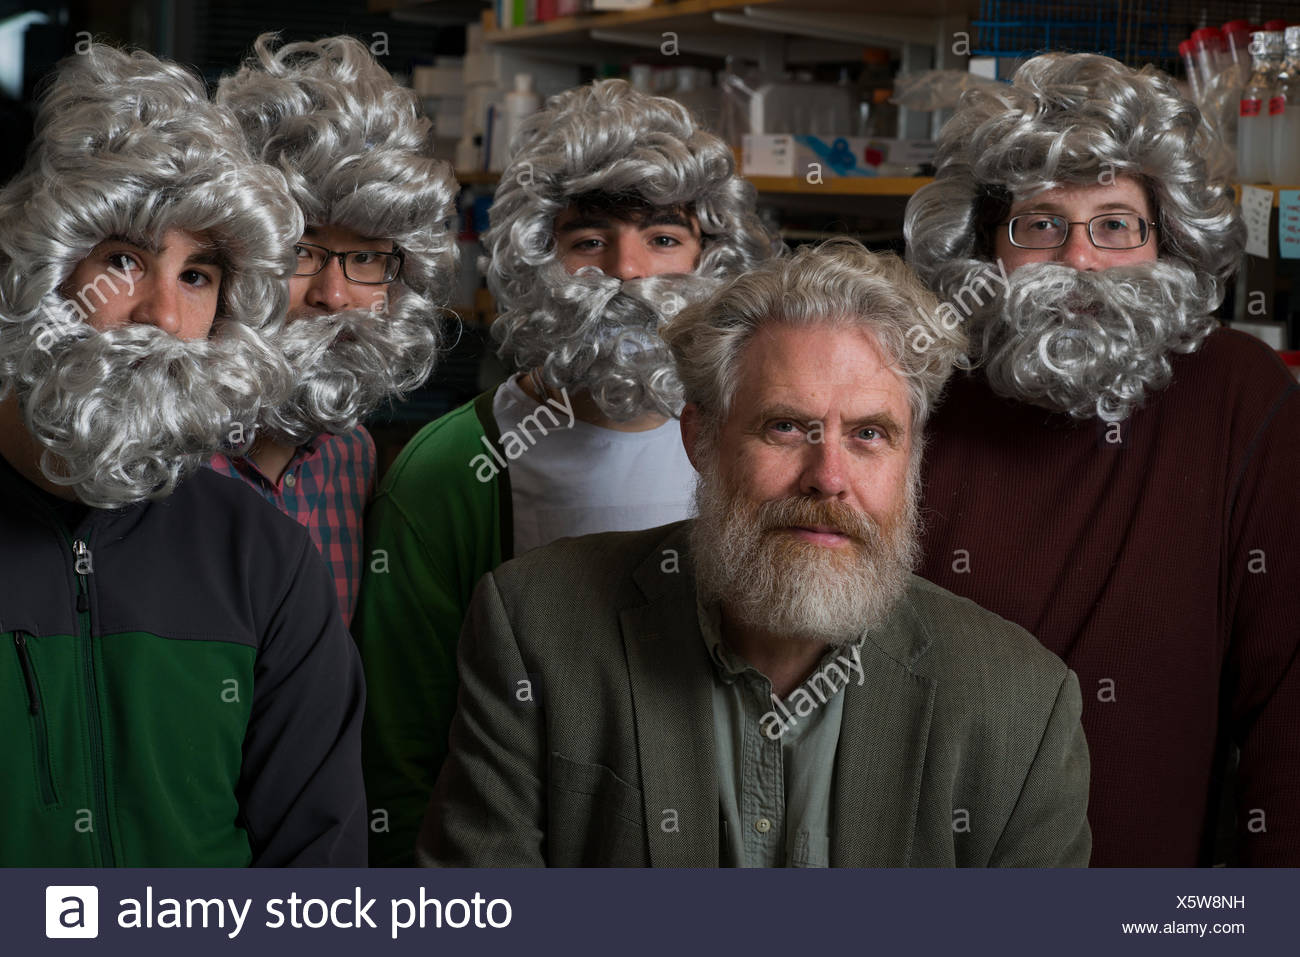 Initiator of The Human Genome Project, Dr. George Church, with post-graduate students who work in his lab, jokingly wearing beards and hair like their professor. Stock Photo